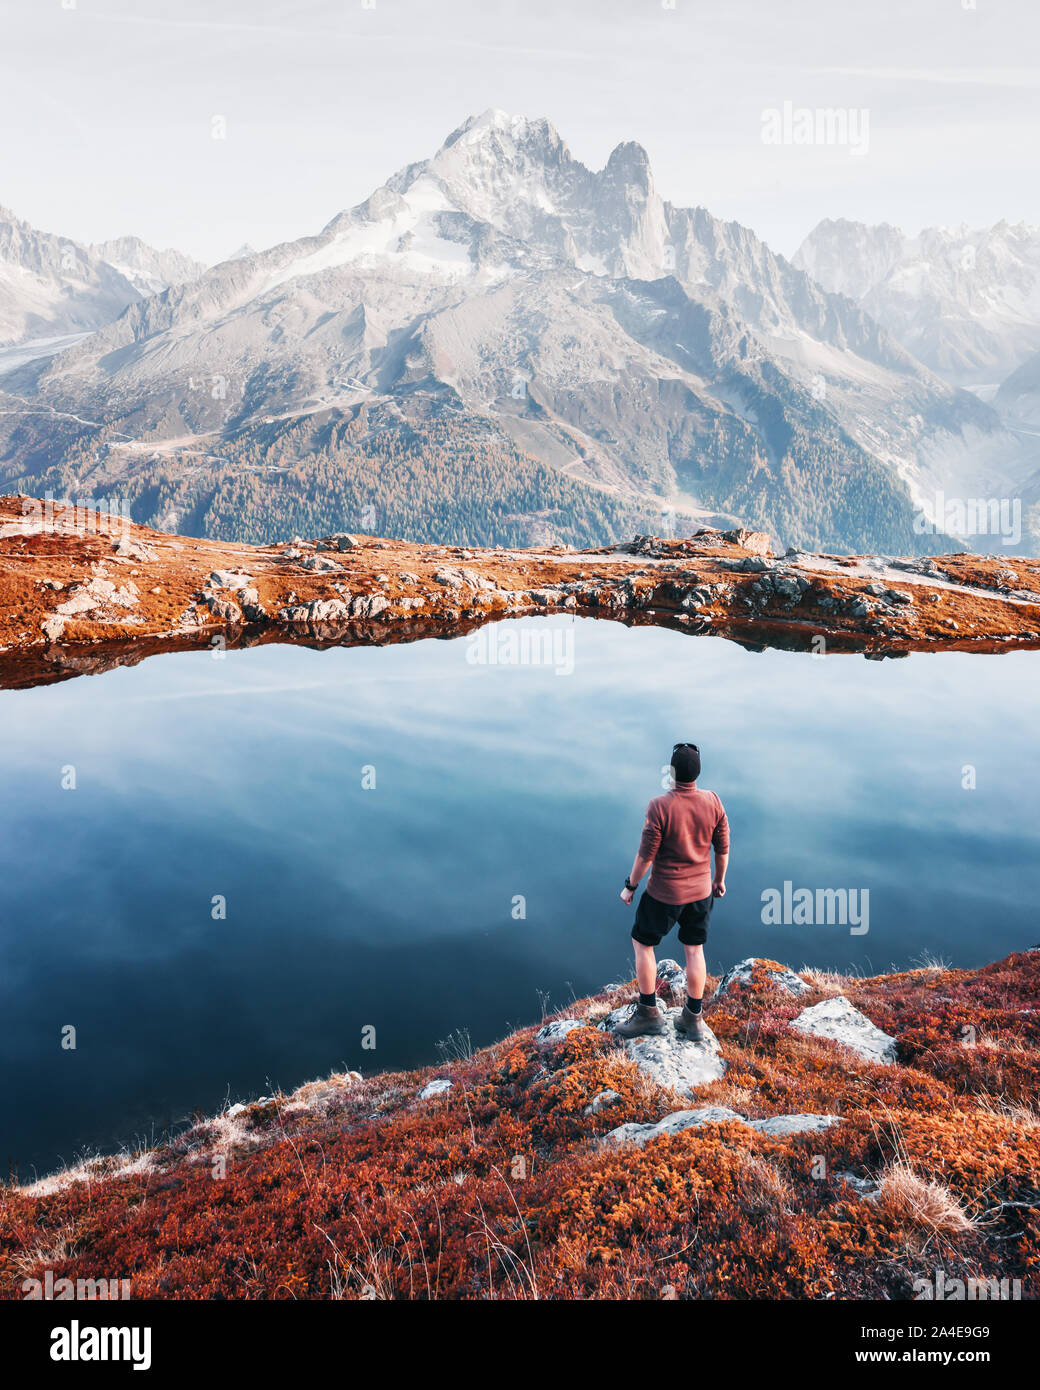 Amazing view on Monte Bianco mountains range with tourist on a foreground. Lac de Cheserys lake, Chamonix, Graian Alps. Landscape photography Stock Photo